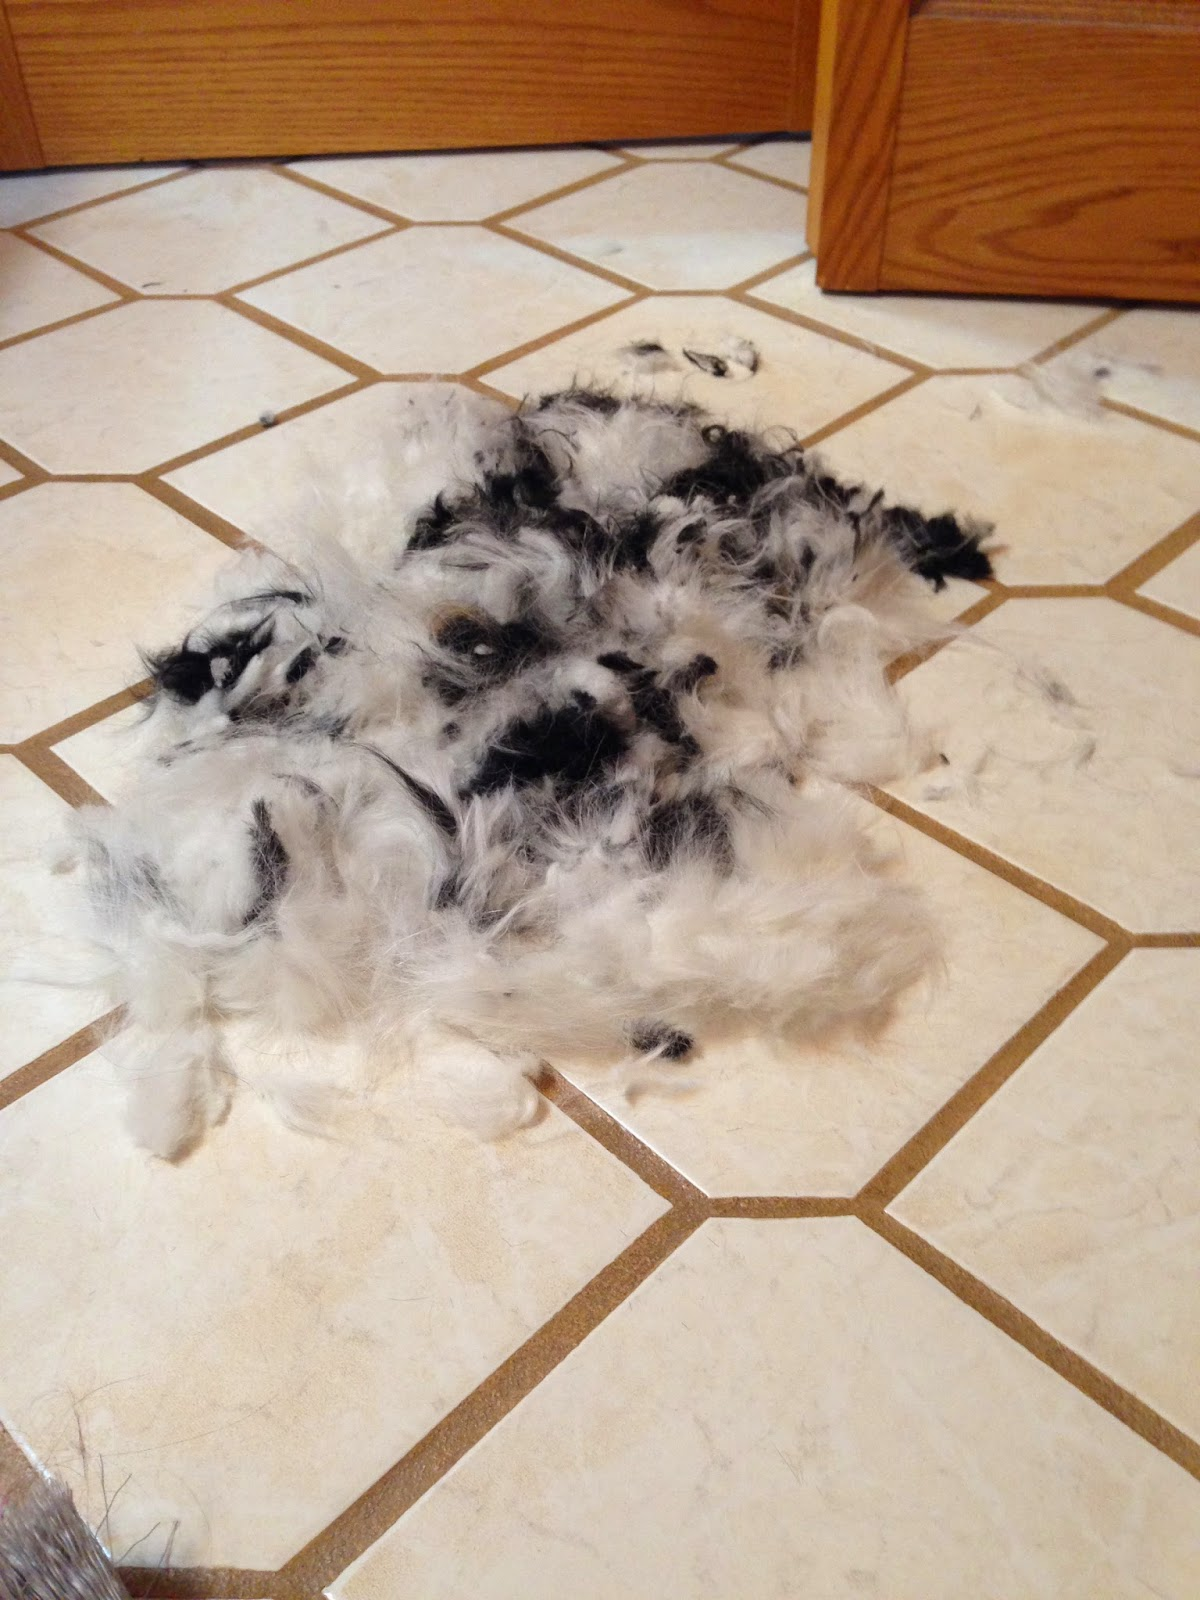 All the fur that we shaved off my dog using clippers.